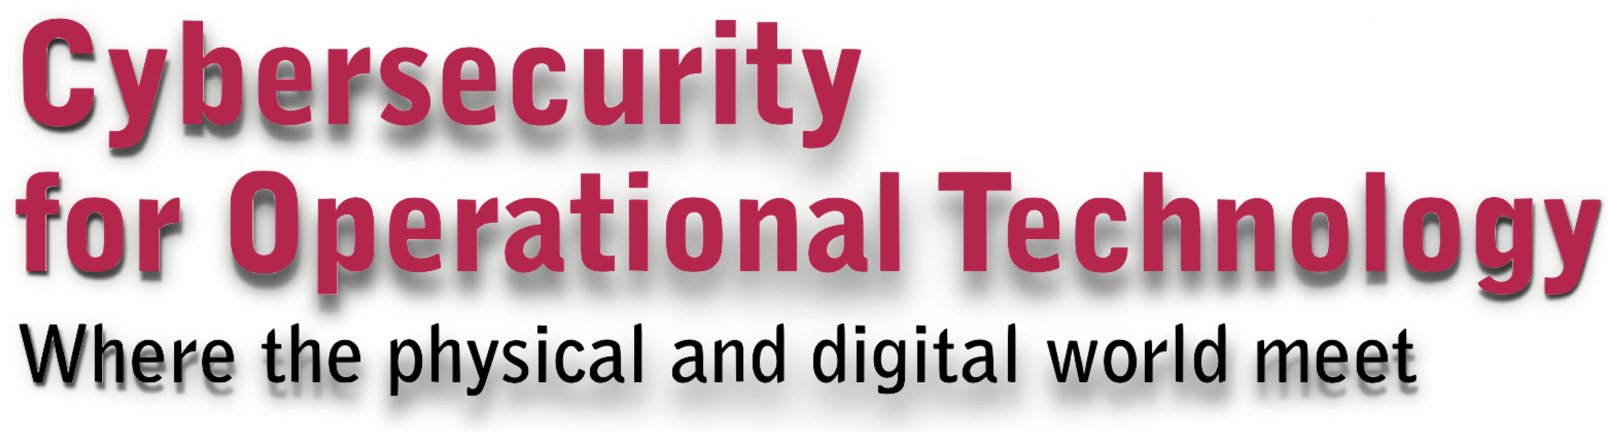 Cybersecurity for Operational Technology - Where the physical and digital world met